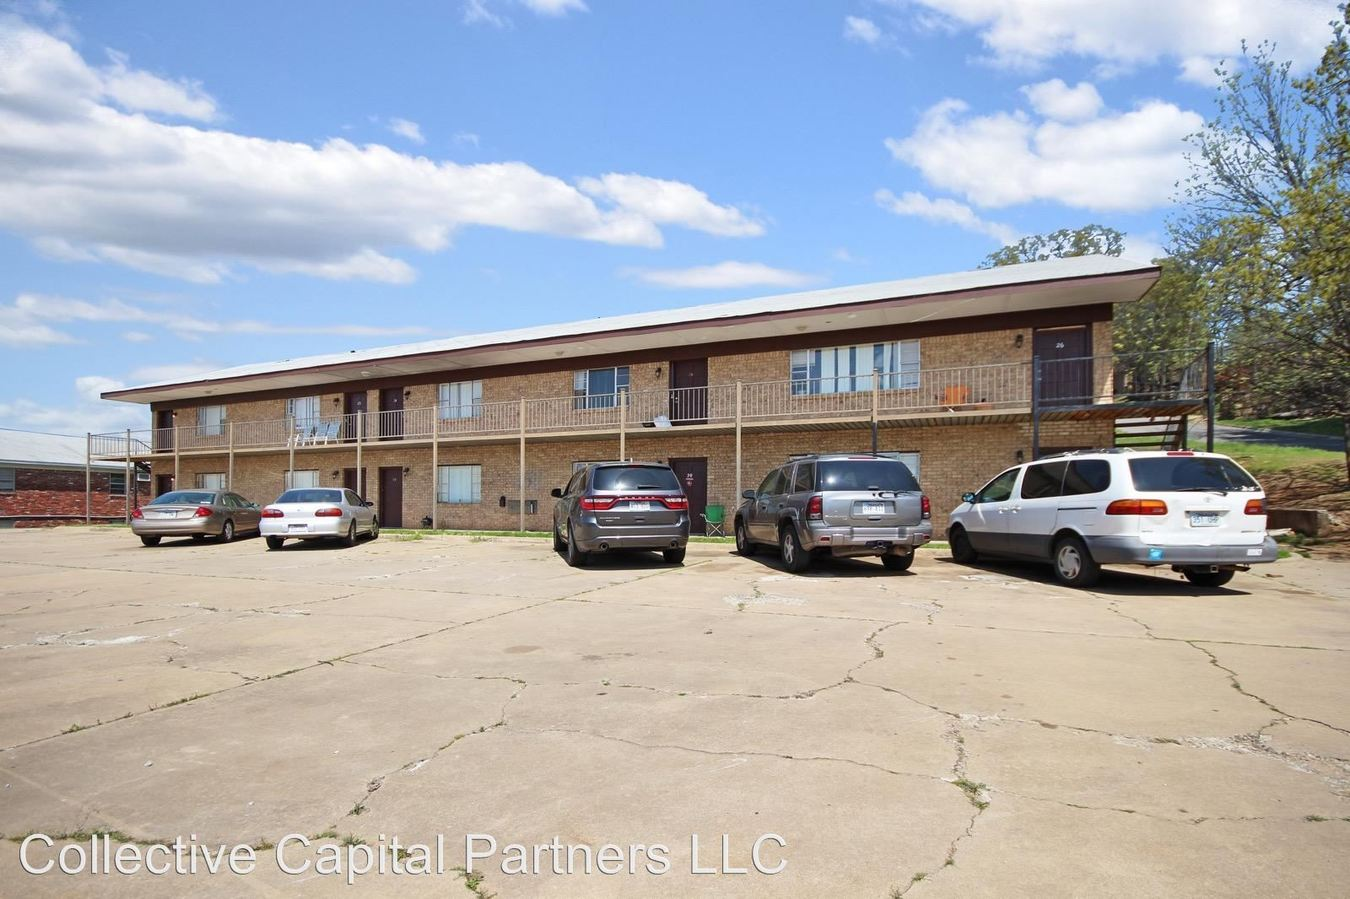 1 Bedroom 1 Bathroom Apartment for rent at 1511 Boston Street in Fort Smith, AR